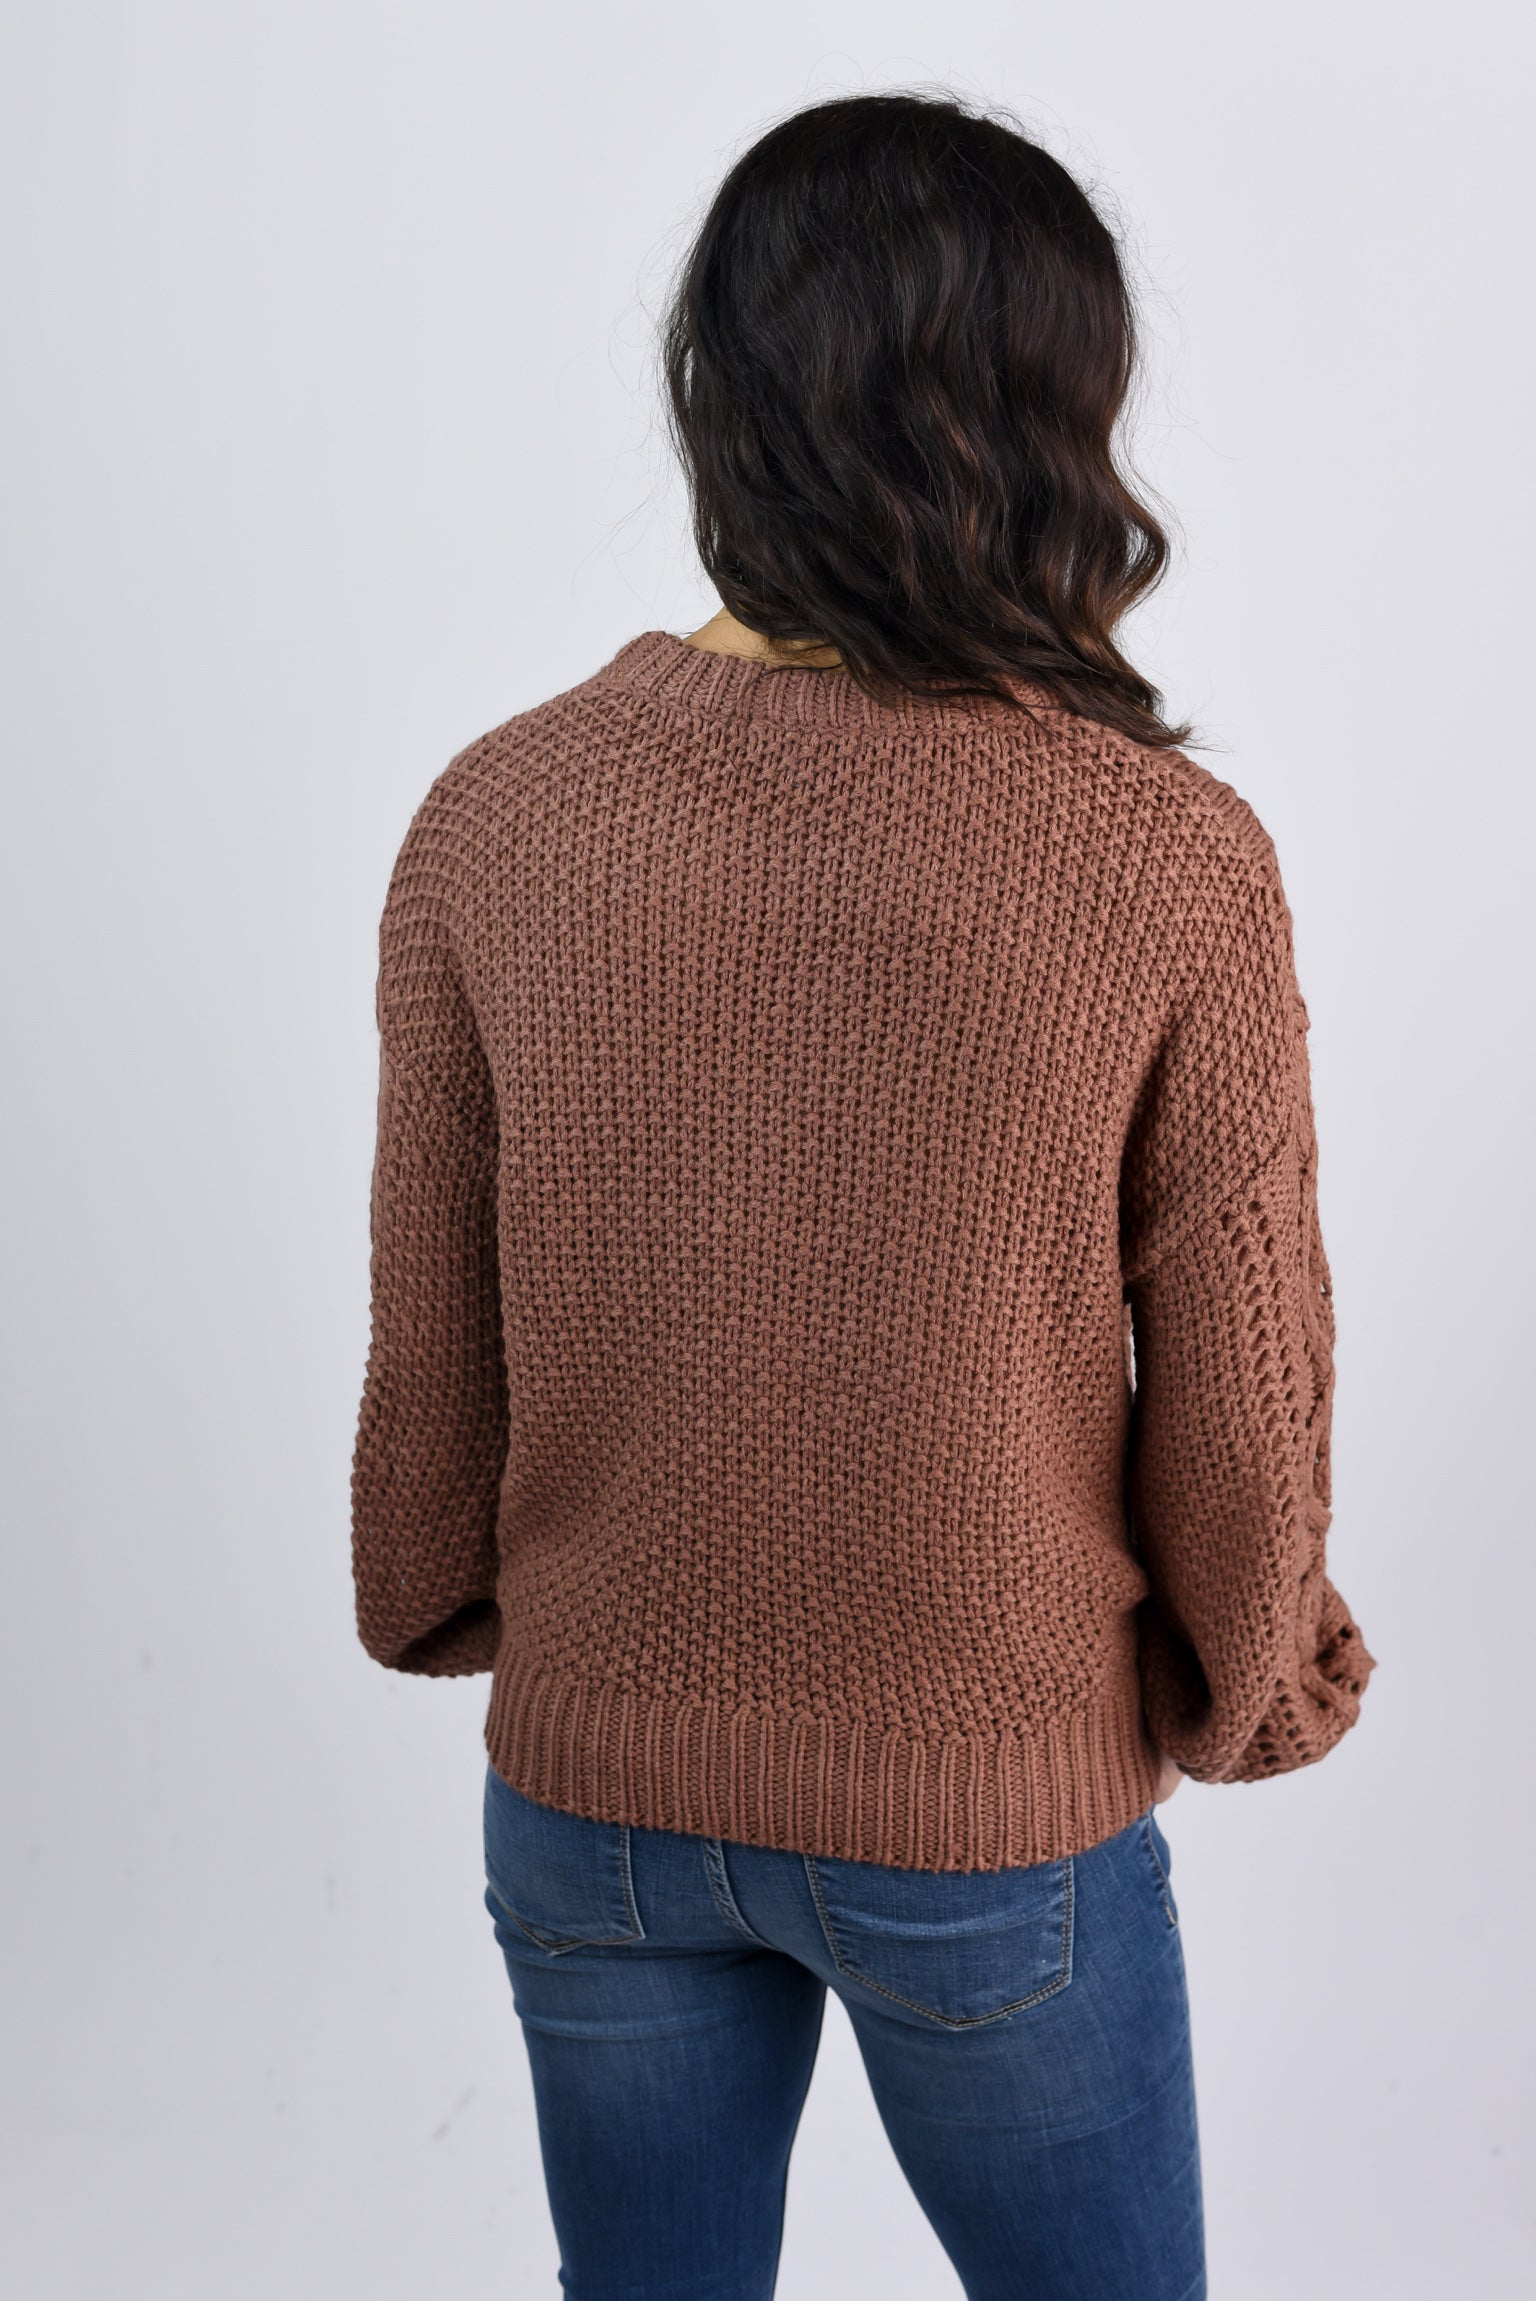 Autumn Inspired Sable Chunky Knit Sweater